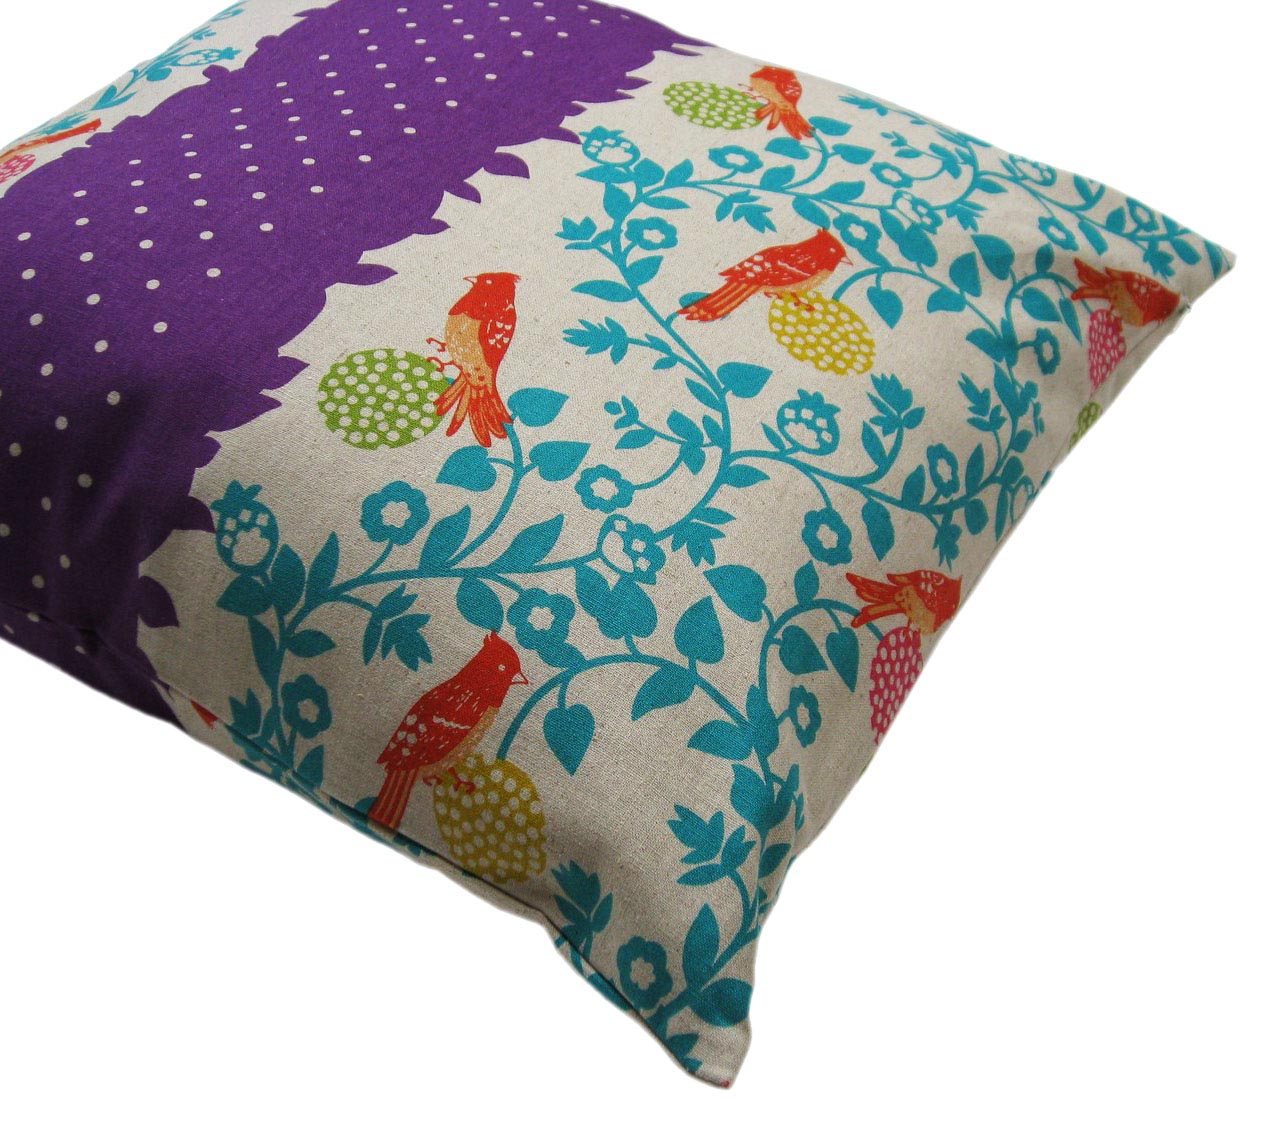 Teal and Purple Throw Pillows